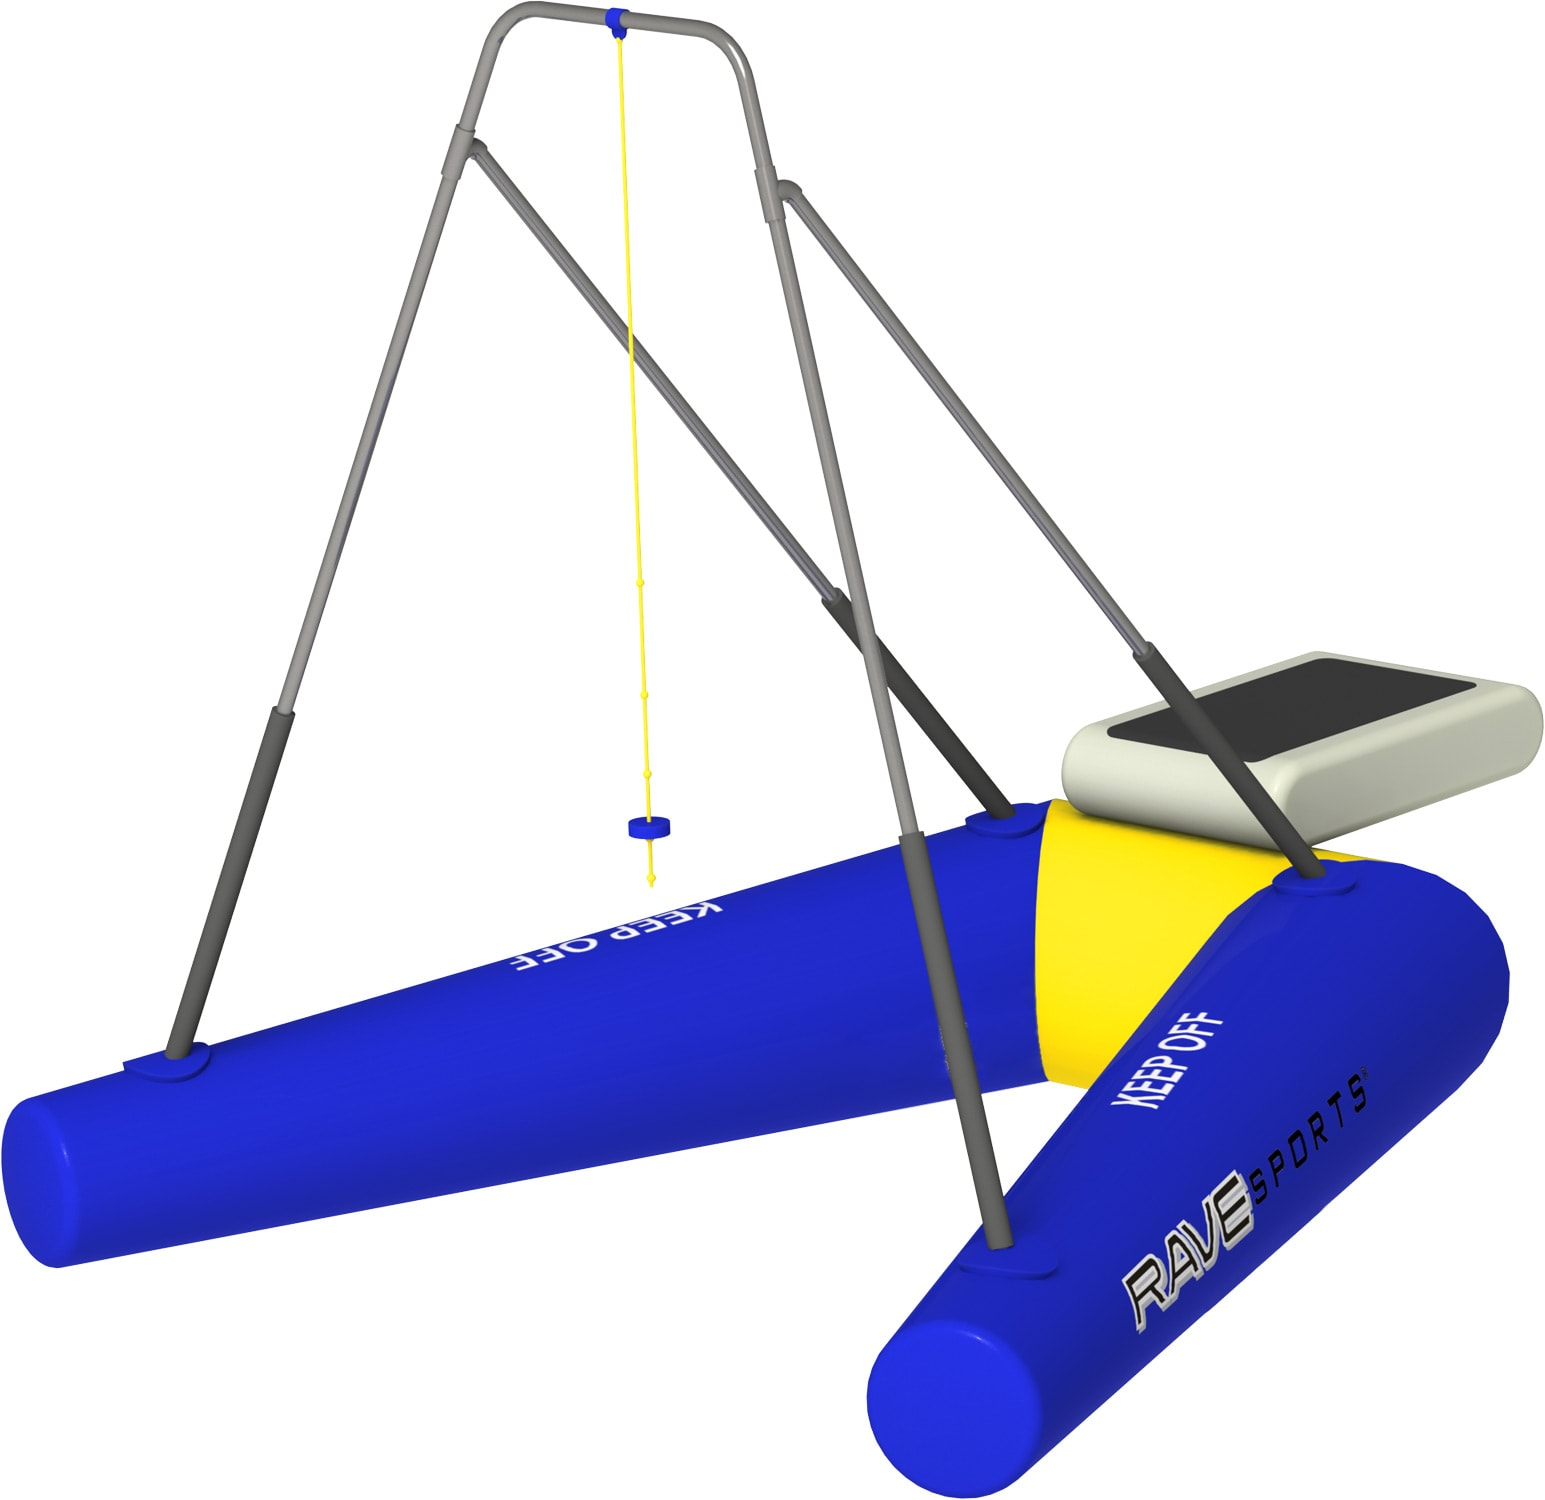 Rave Rope Swing rarpswng12zz-rave-waterpark-attachments